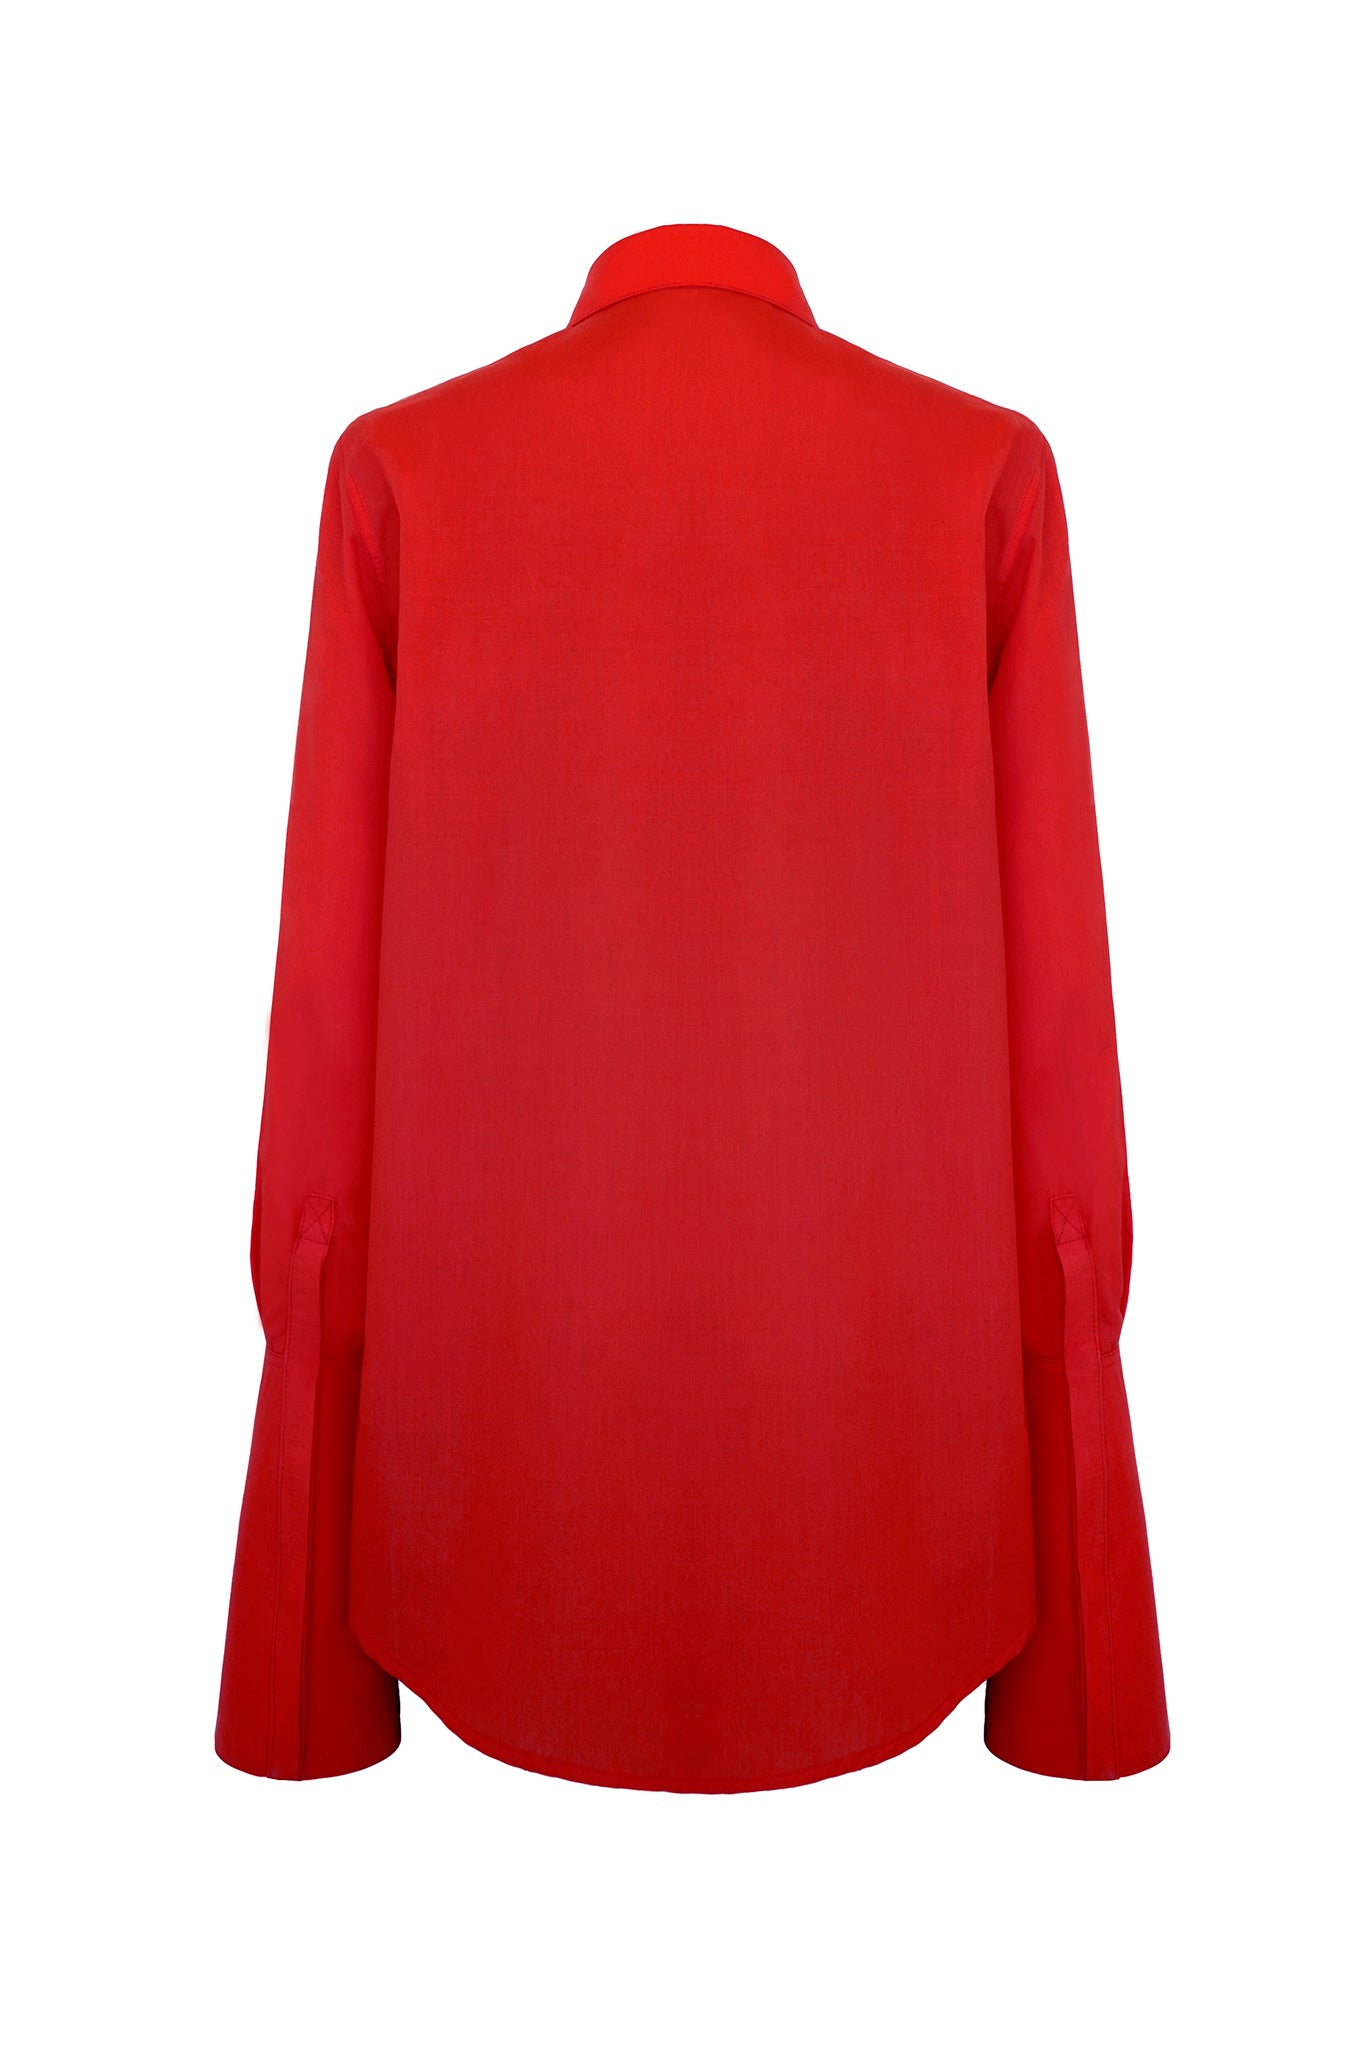 A modern twist on a classic, this red shirt features an unusual elongated collar and long, conical and graphic cuffs. First worn on the AW17 catwalk.